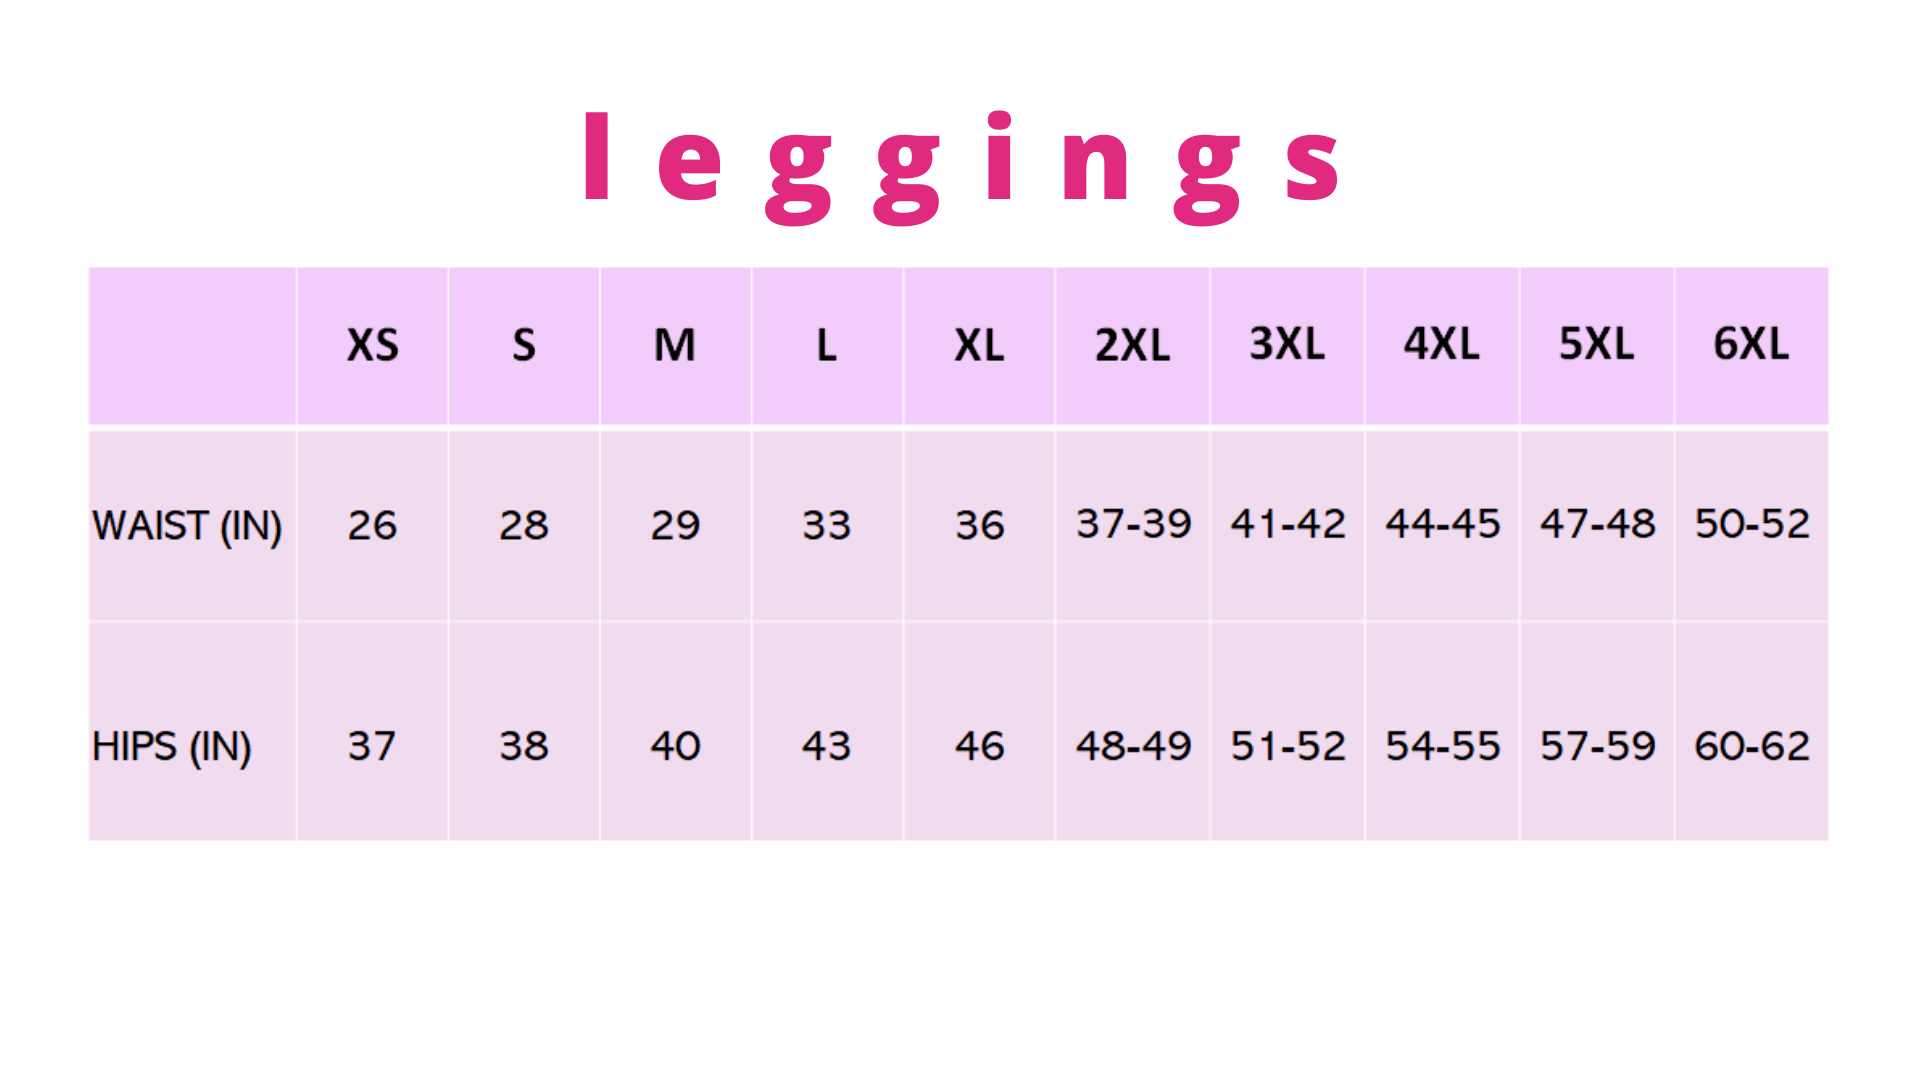 Pynk Haus leggings sizing guide